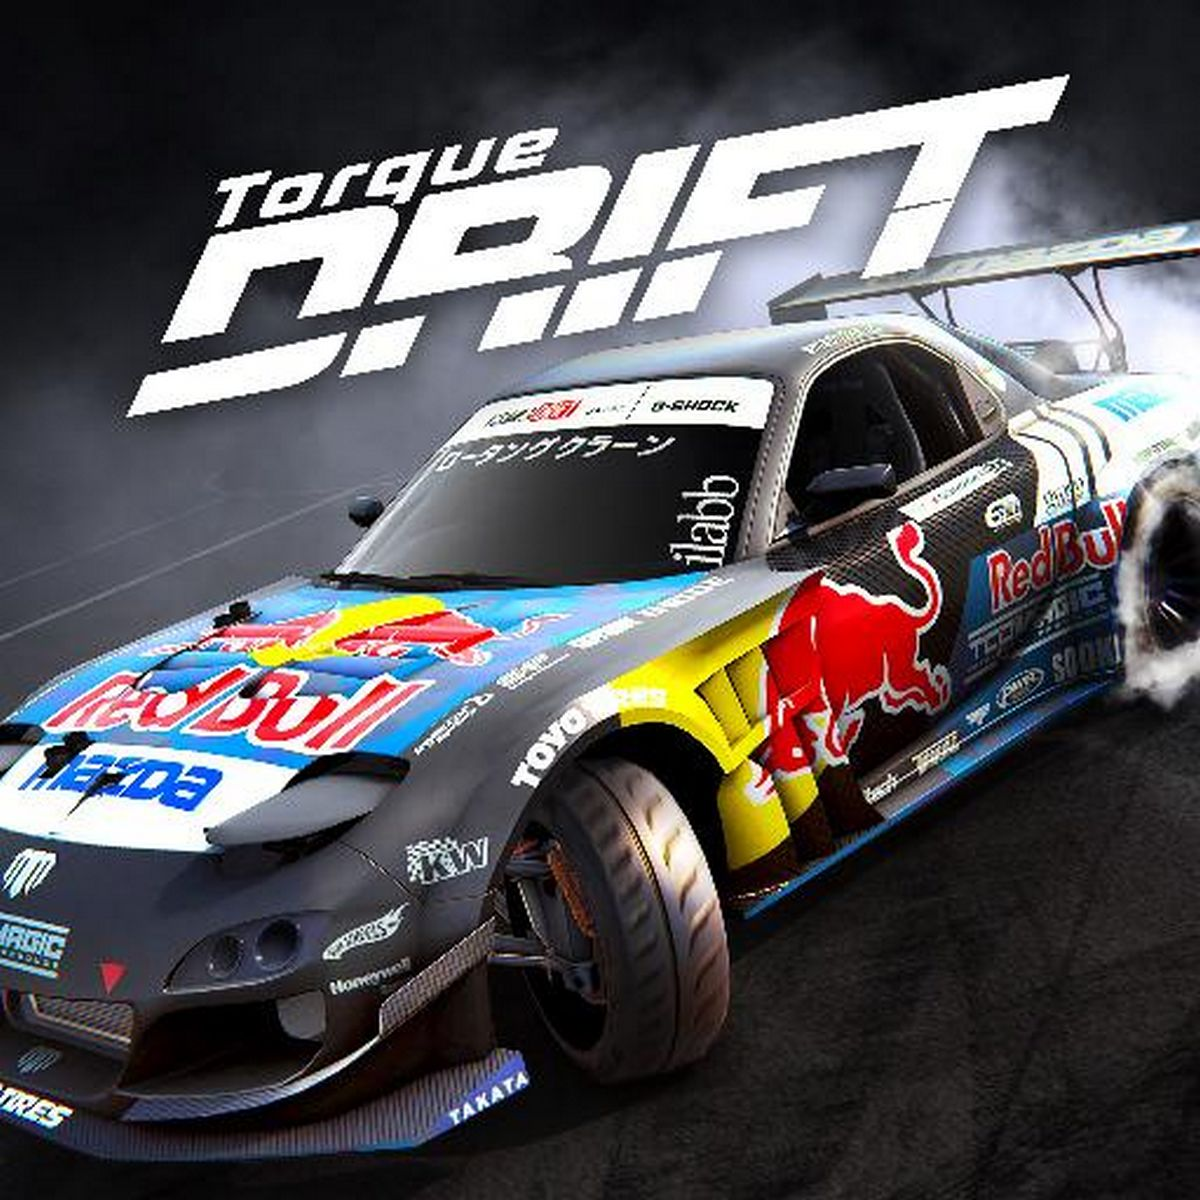 Torque Drift APK MOD v1.9.2 (Oro/Dinero infinito), Cloud Pocket 365